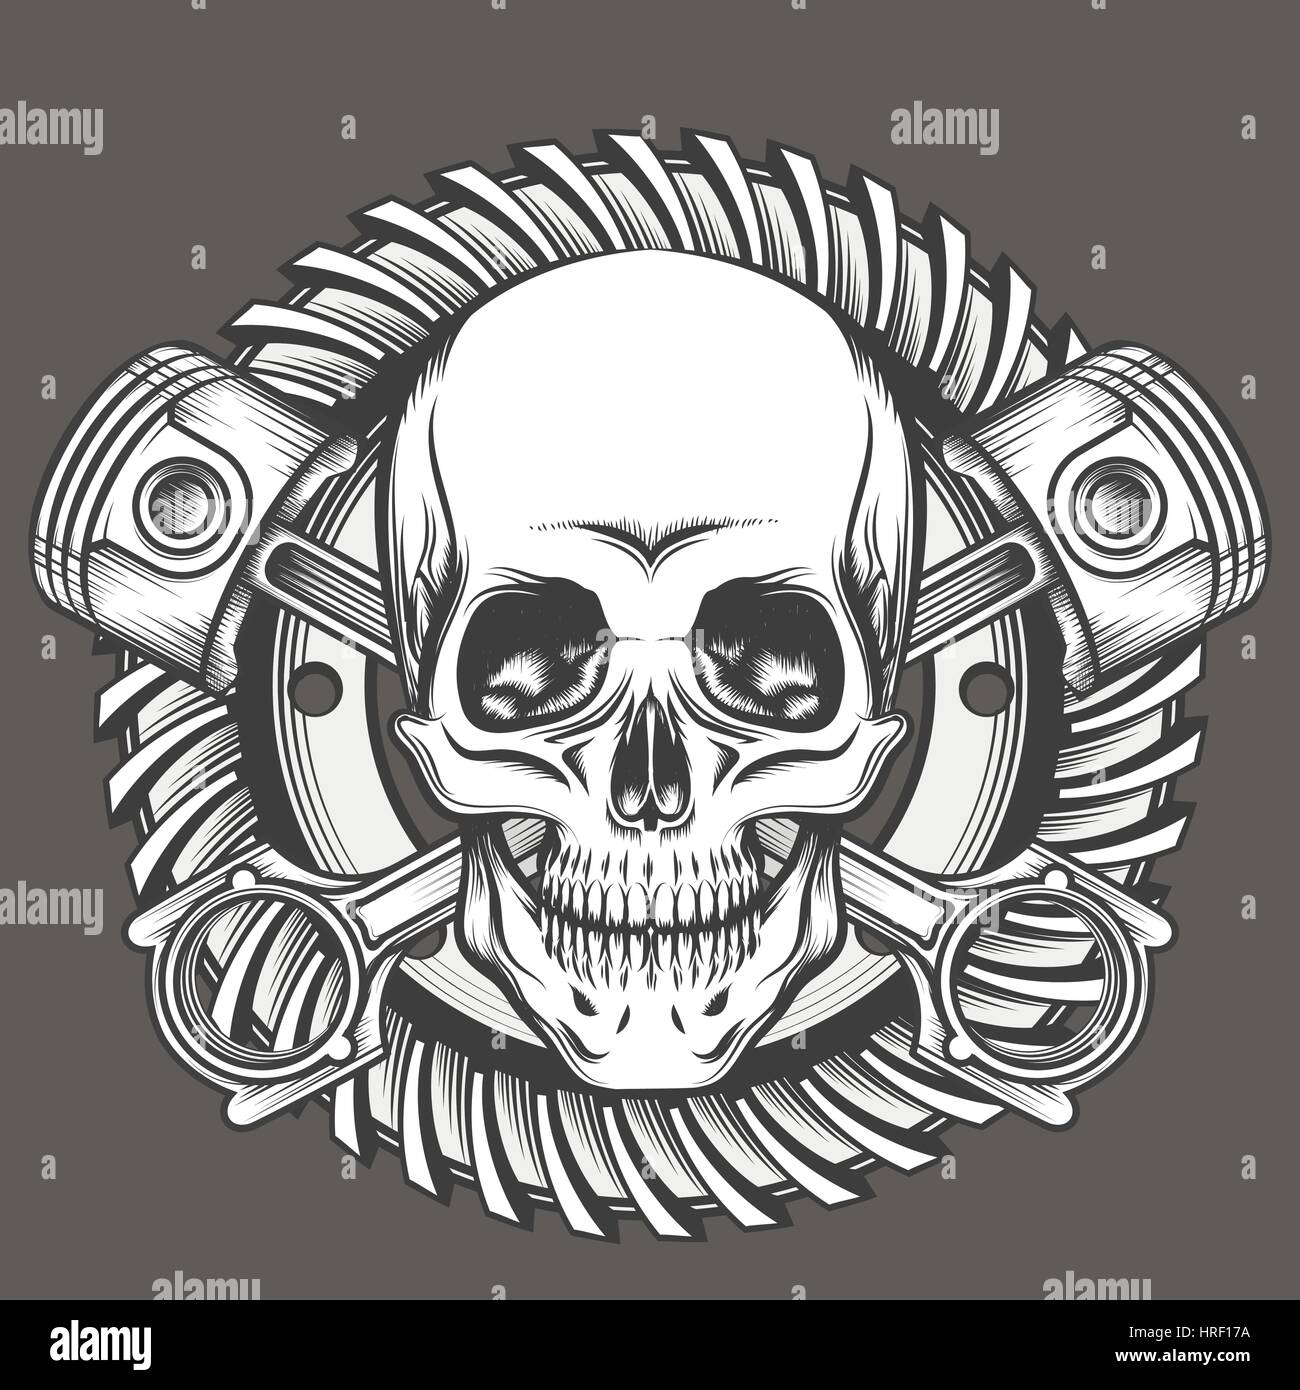 41351a2287cef Vintage Skull With Crossed Piston and Motorcycle Gear Emblem. Biker Club or  Motorcycles workshop design element. Vector illustration in engraving styl